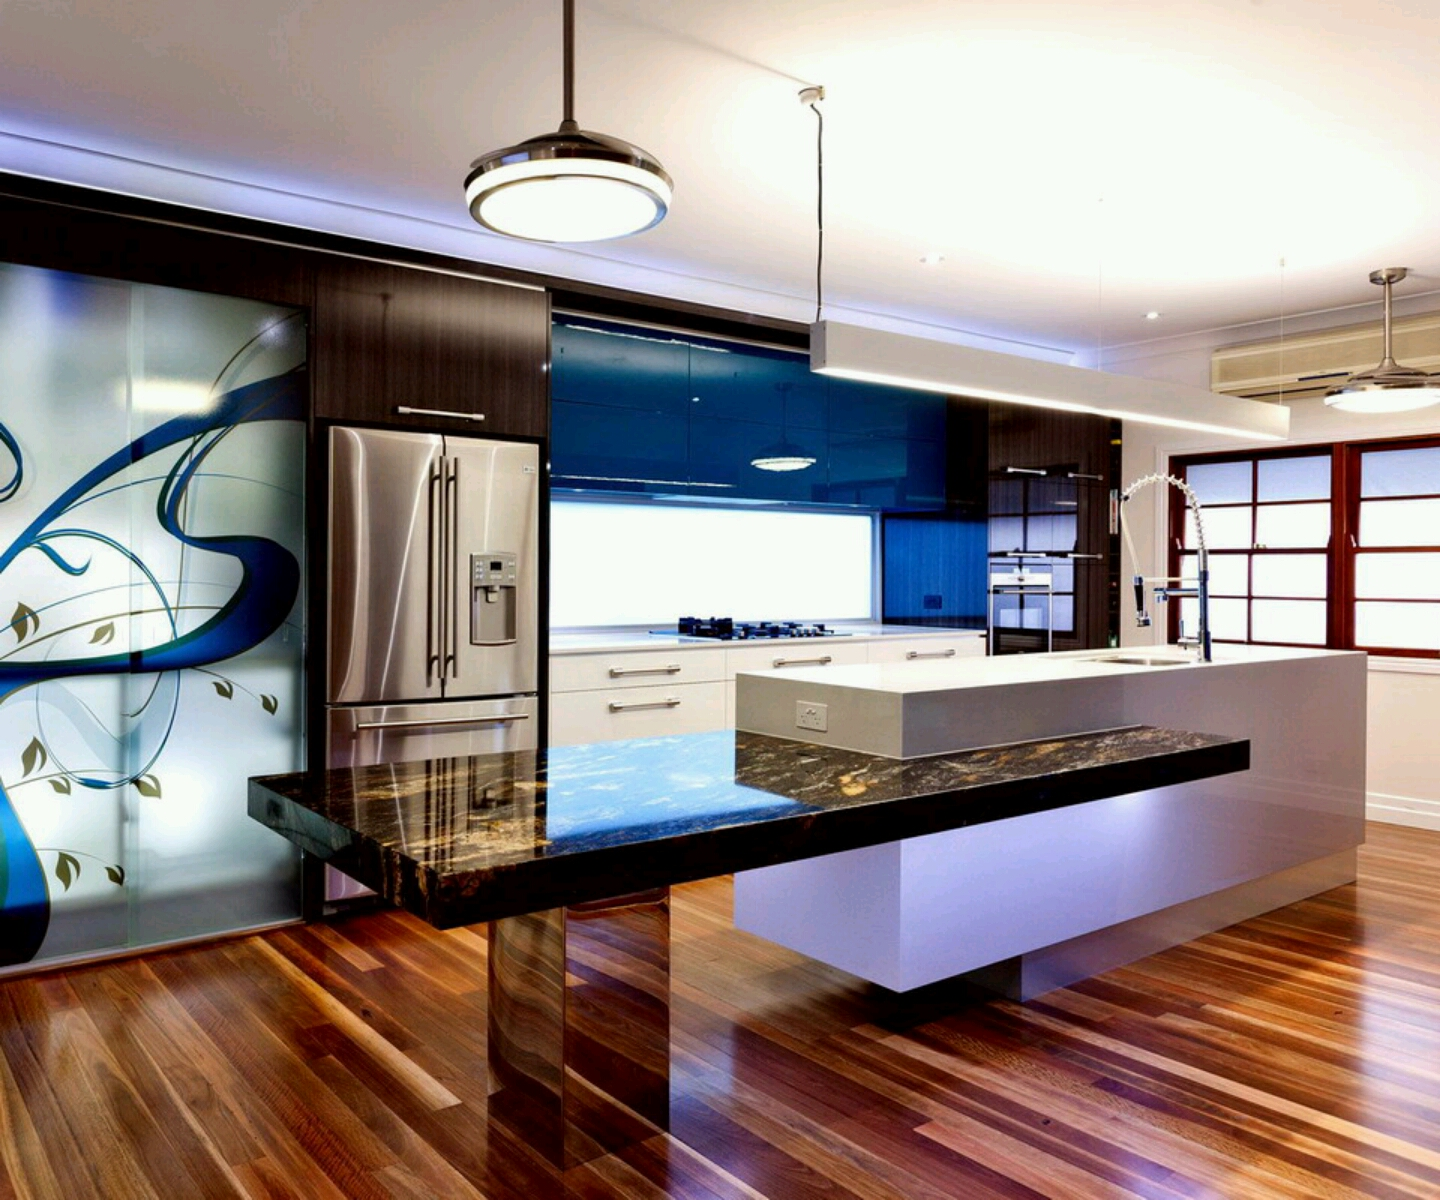 Ultra modern kitchen designs ideas new home designs for New kitchen designs pictures